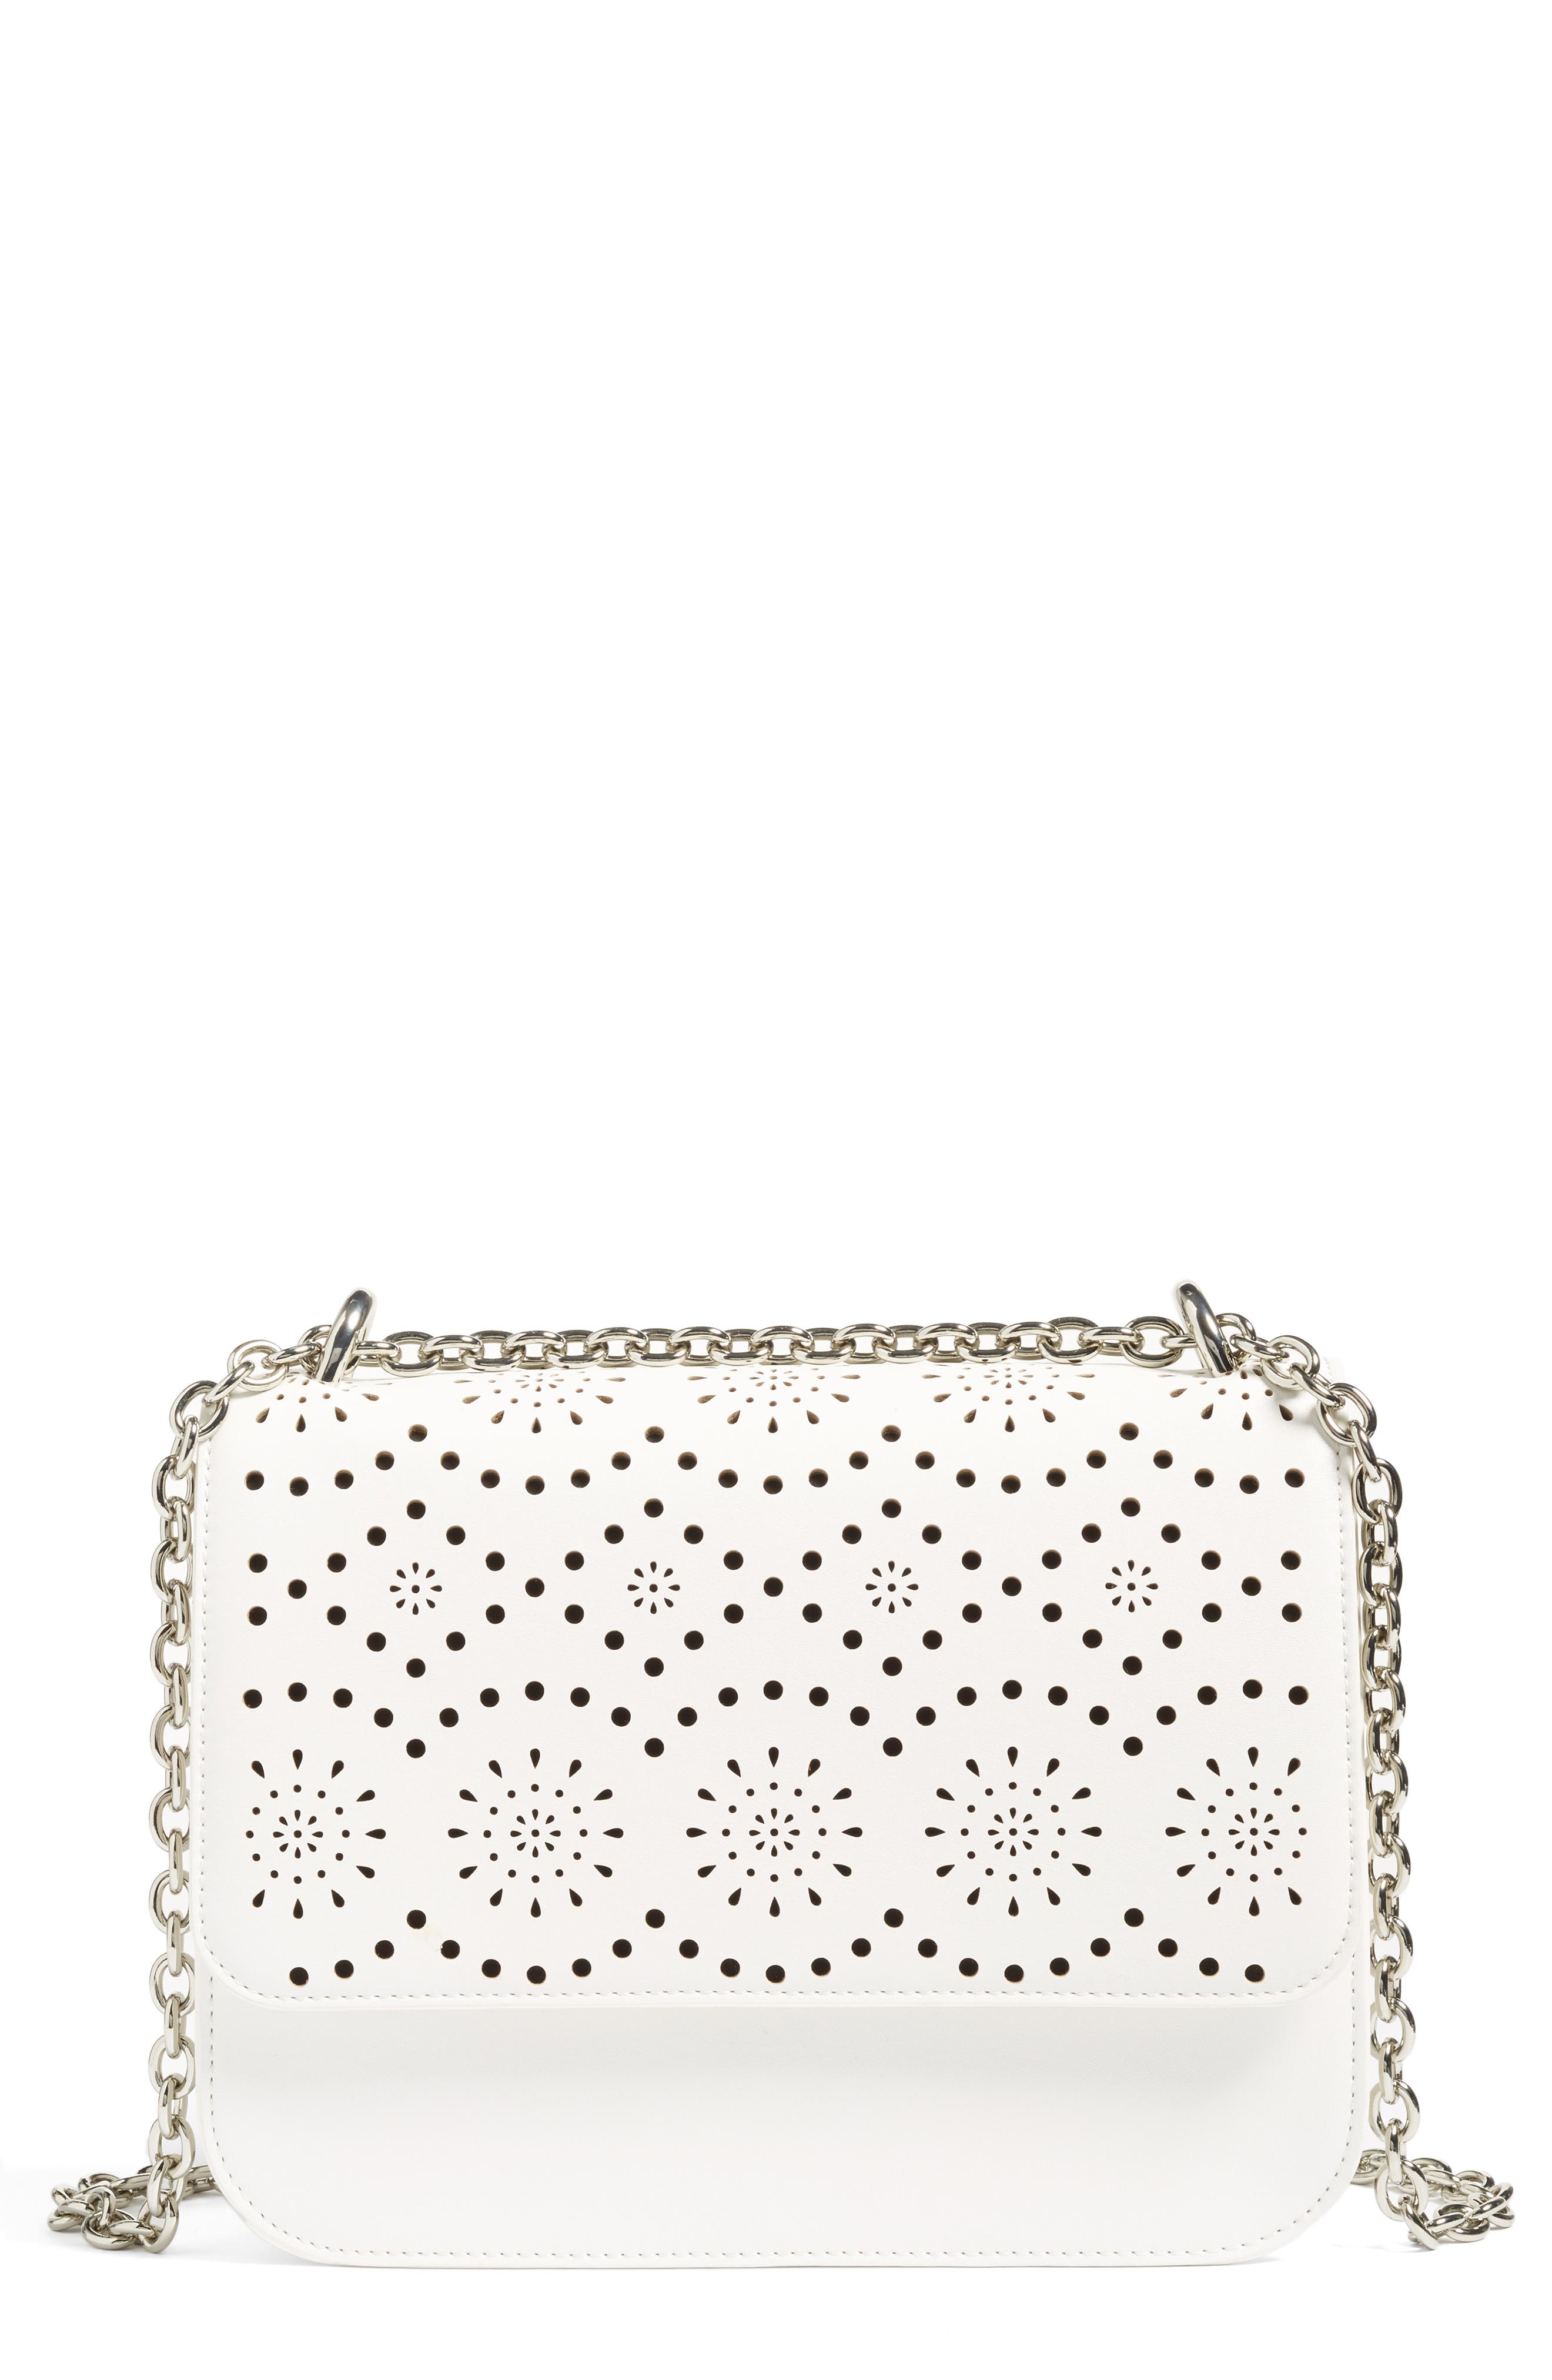 Alternate Image 1 Selected - Chelsea28 Dahlia Perforated Faux Leather Shoulder Bag